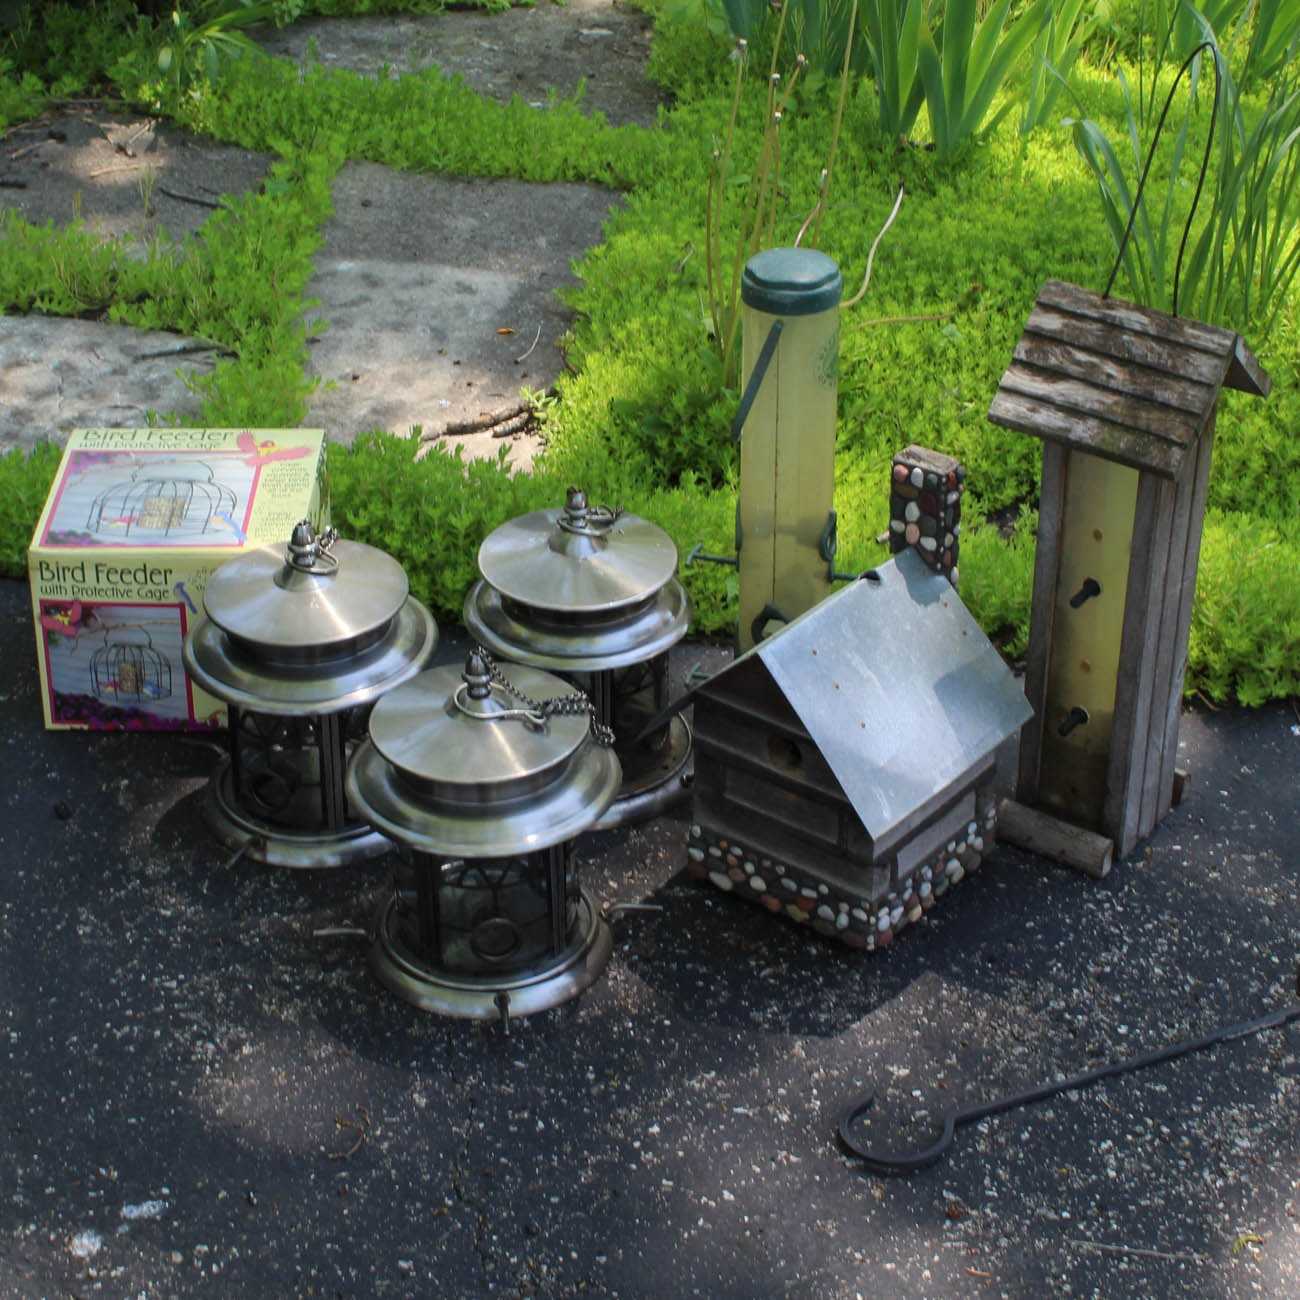 Assortment of Birdhouses and Feeders